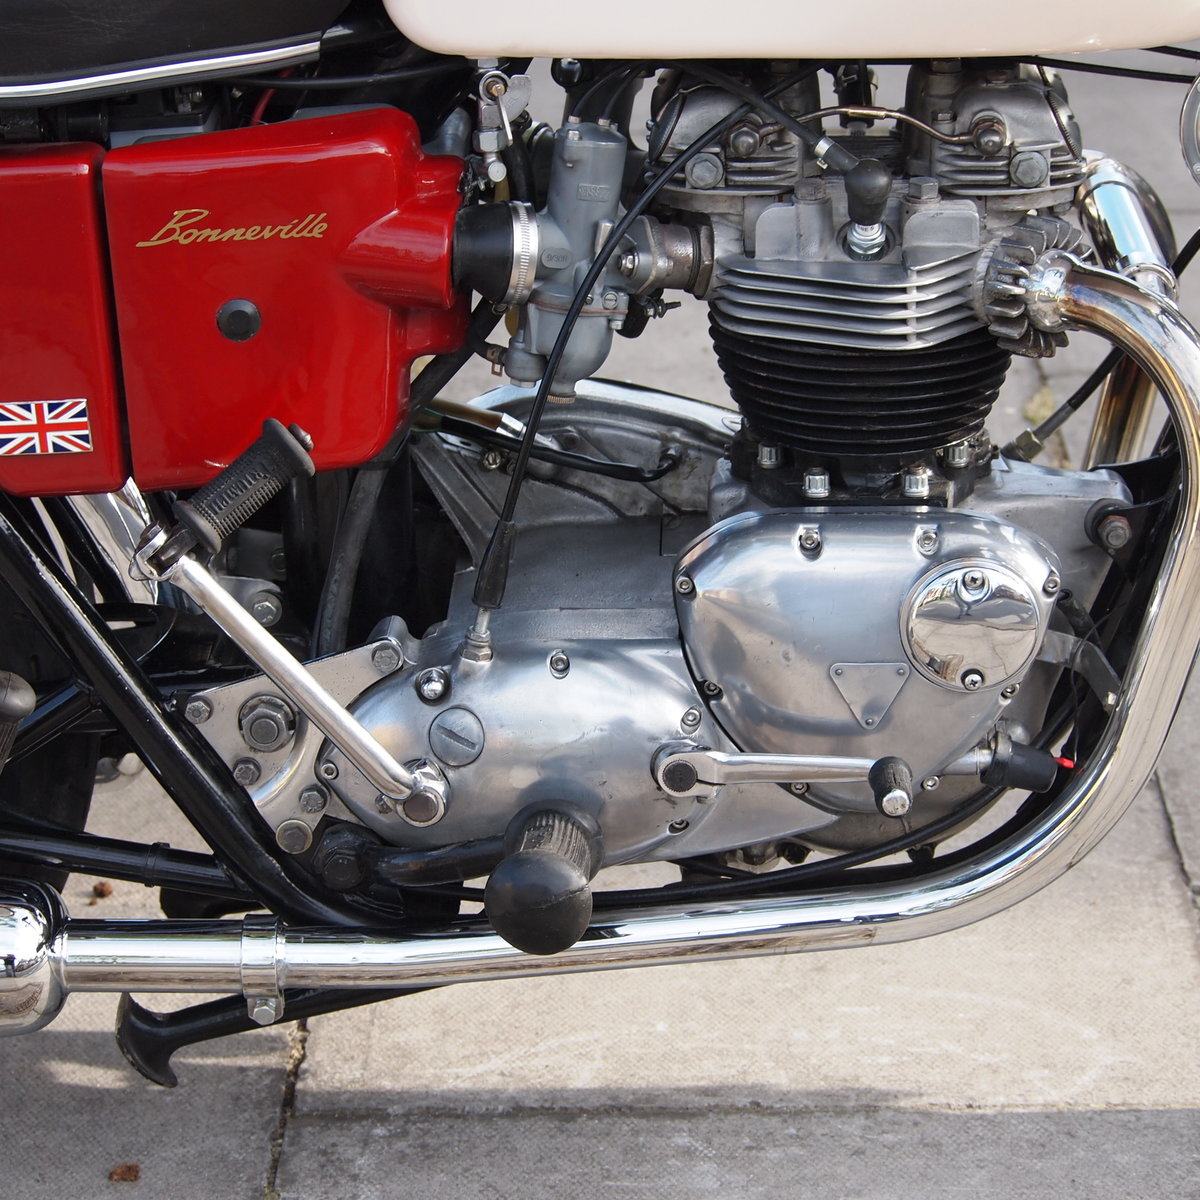 1971 Triumph T120R 650 Bonneville, RESERVED FOR RICHARD. SOLD (picture 4 of 6)